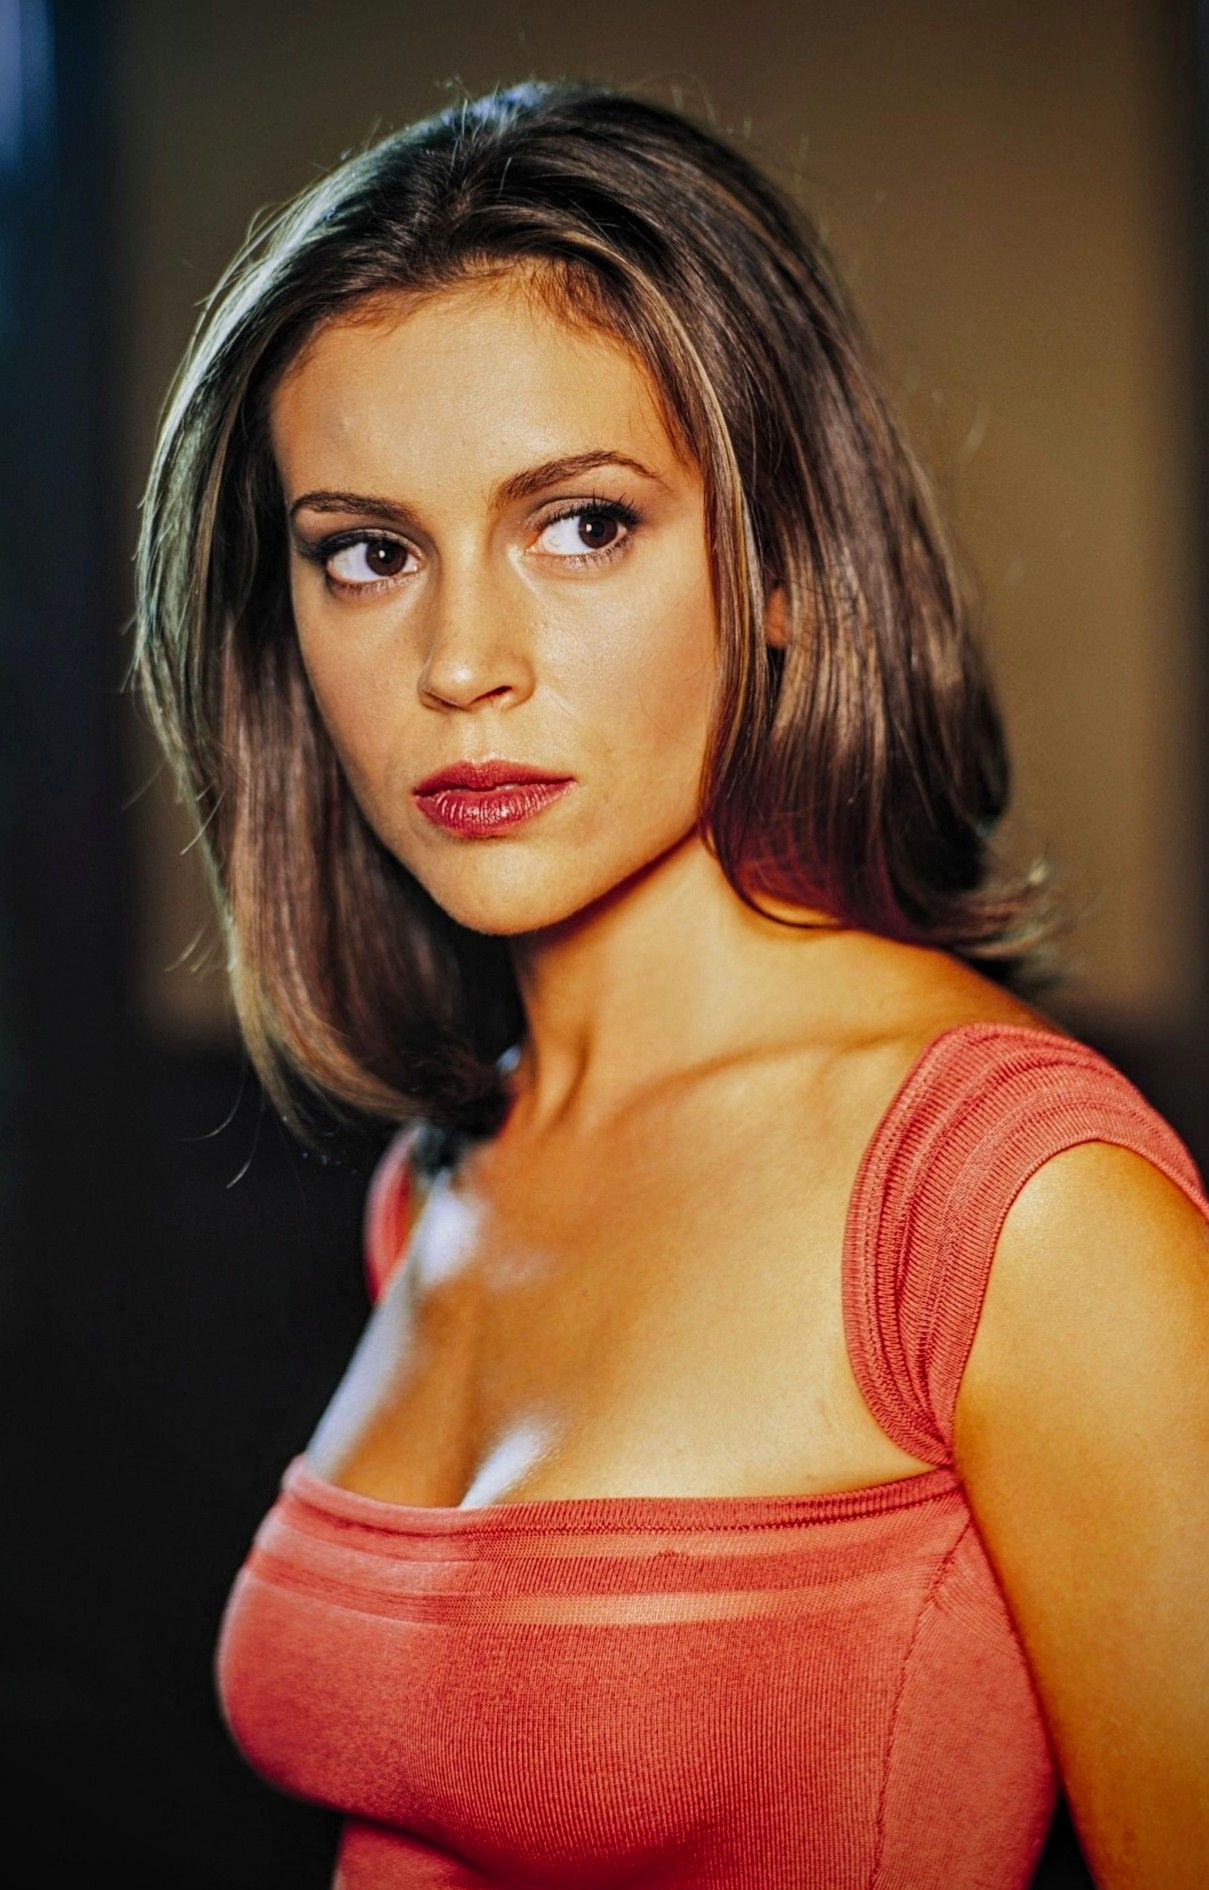 Pin By Bob Rickertsen On Beauty In 2019 Alyssa Milano Women Beauty